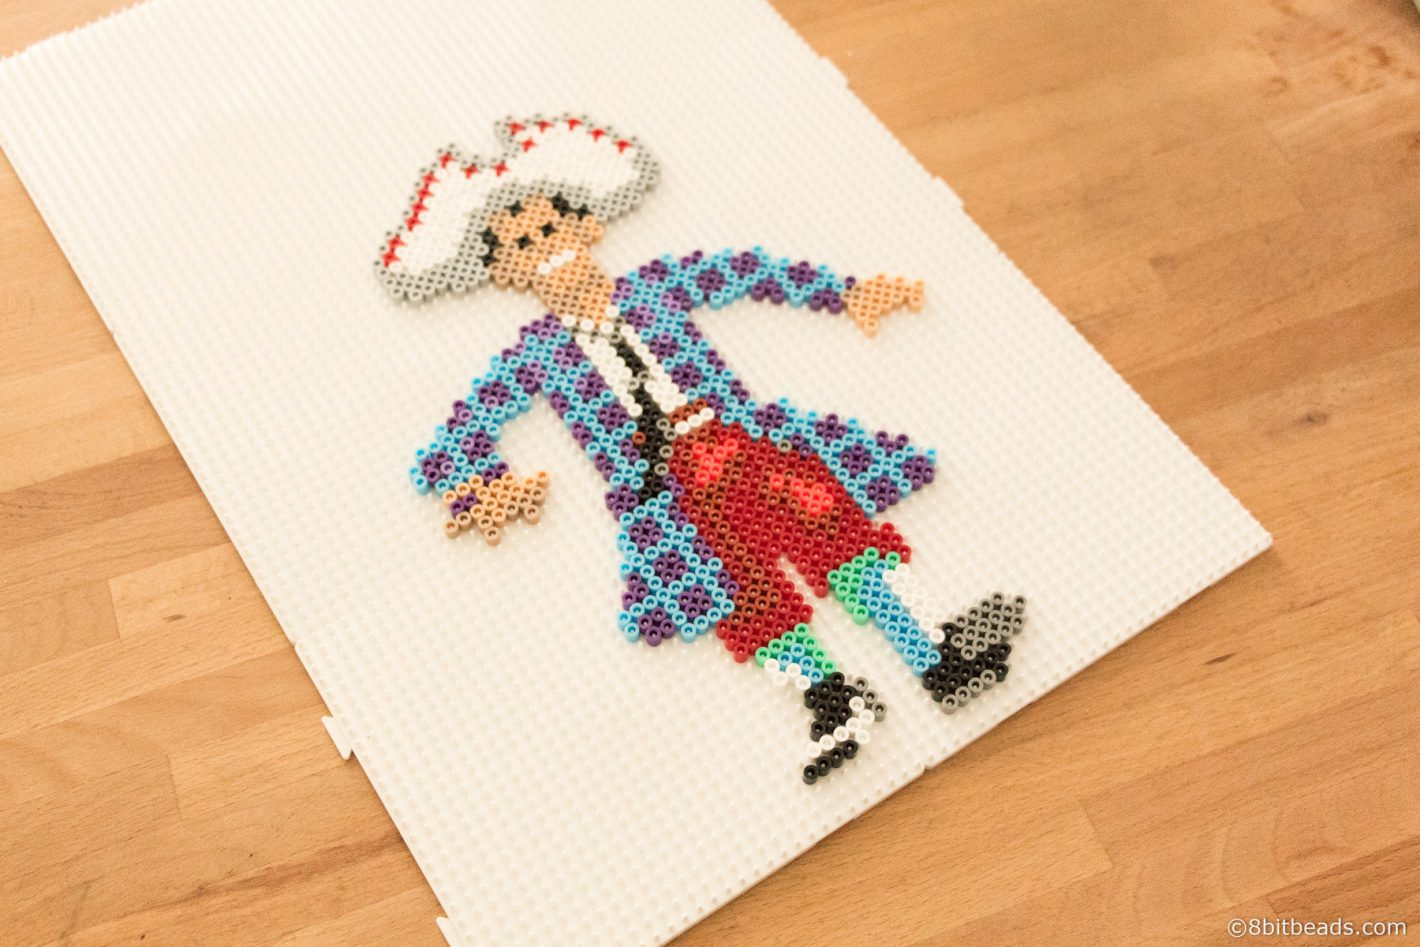 Stan from Monkey Island 8bitbeads.com